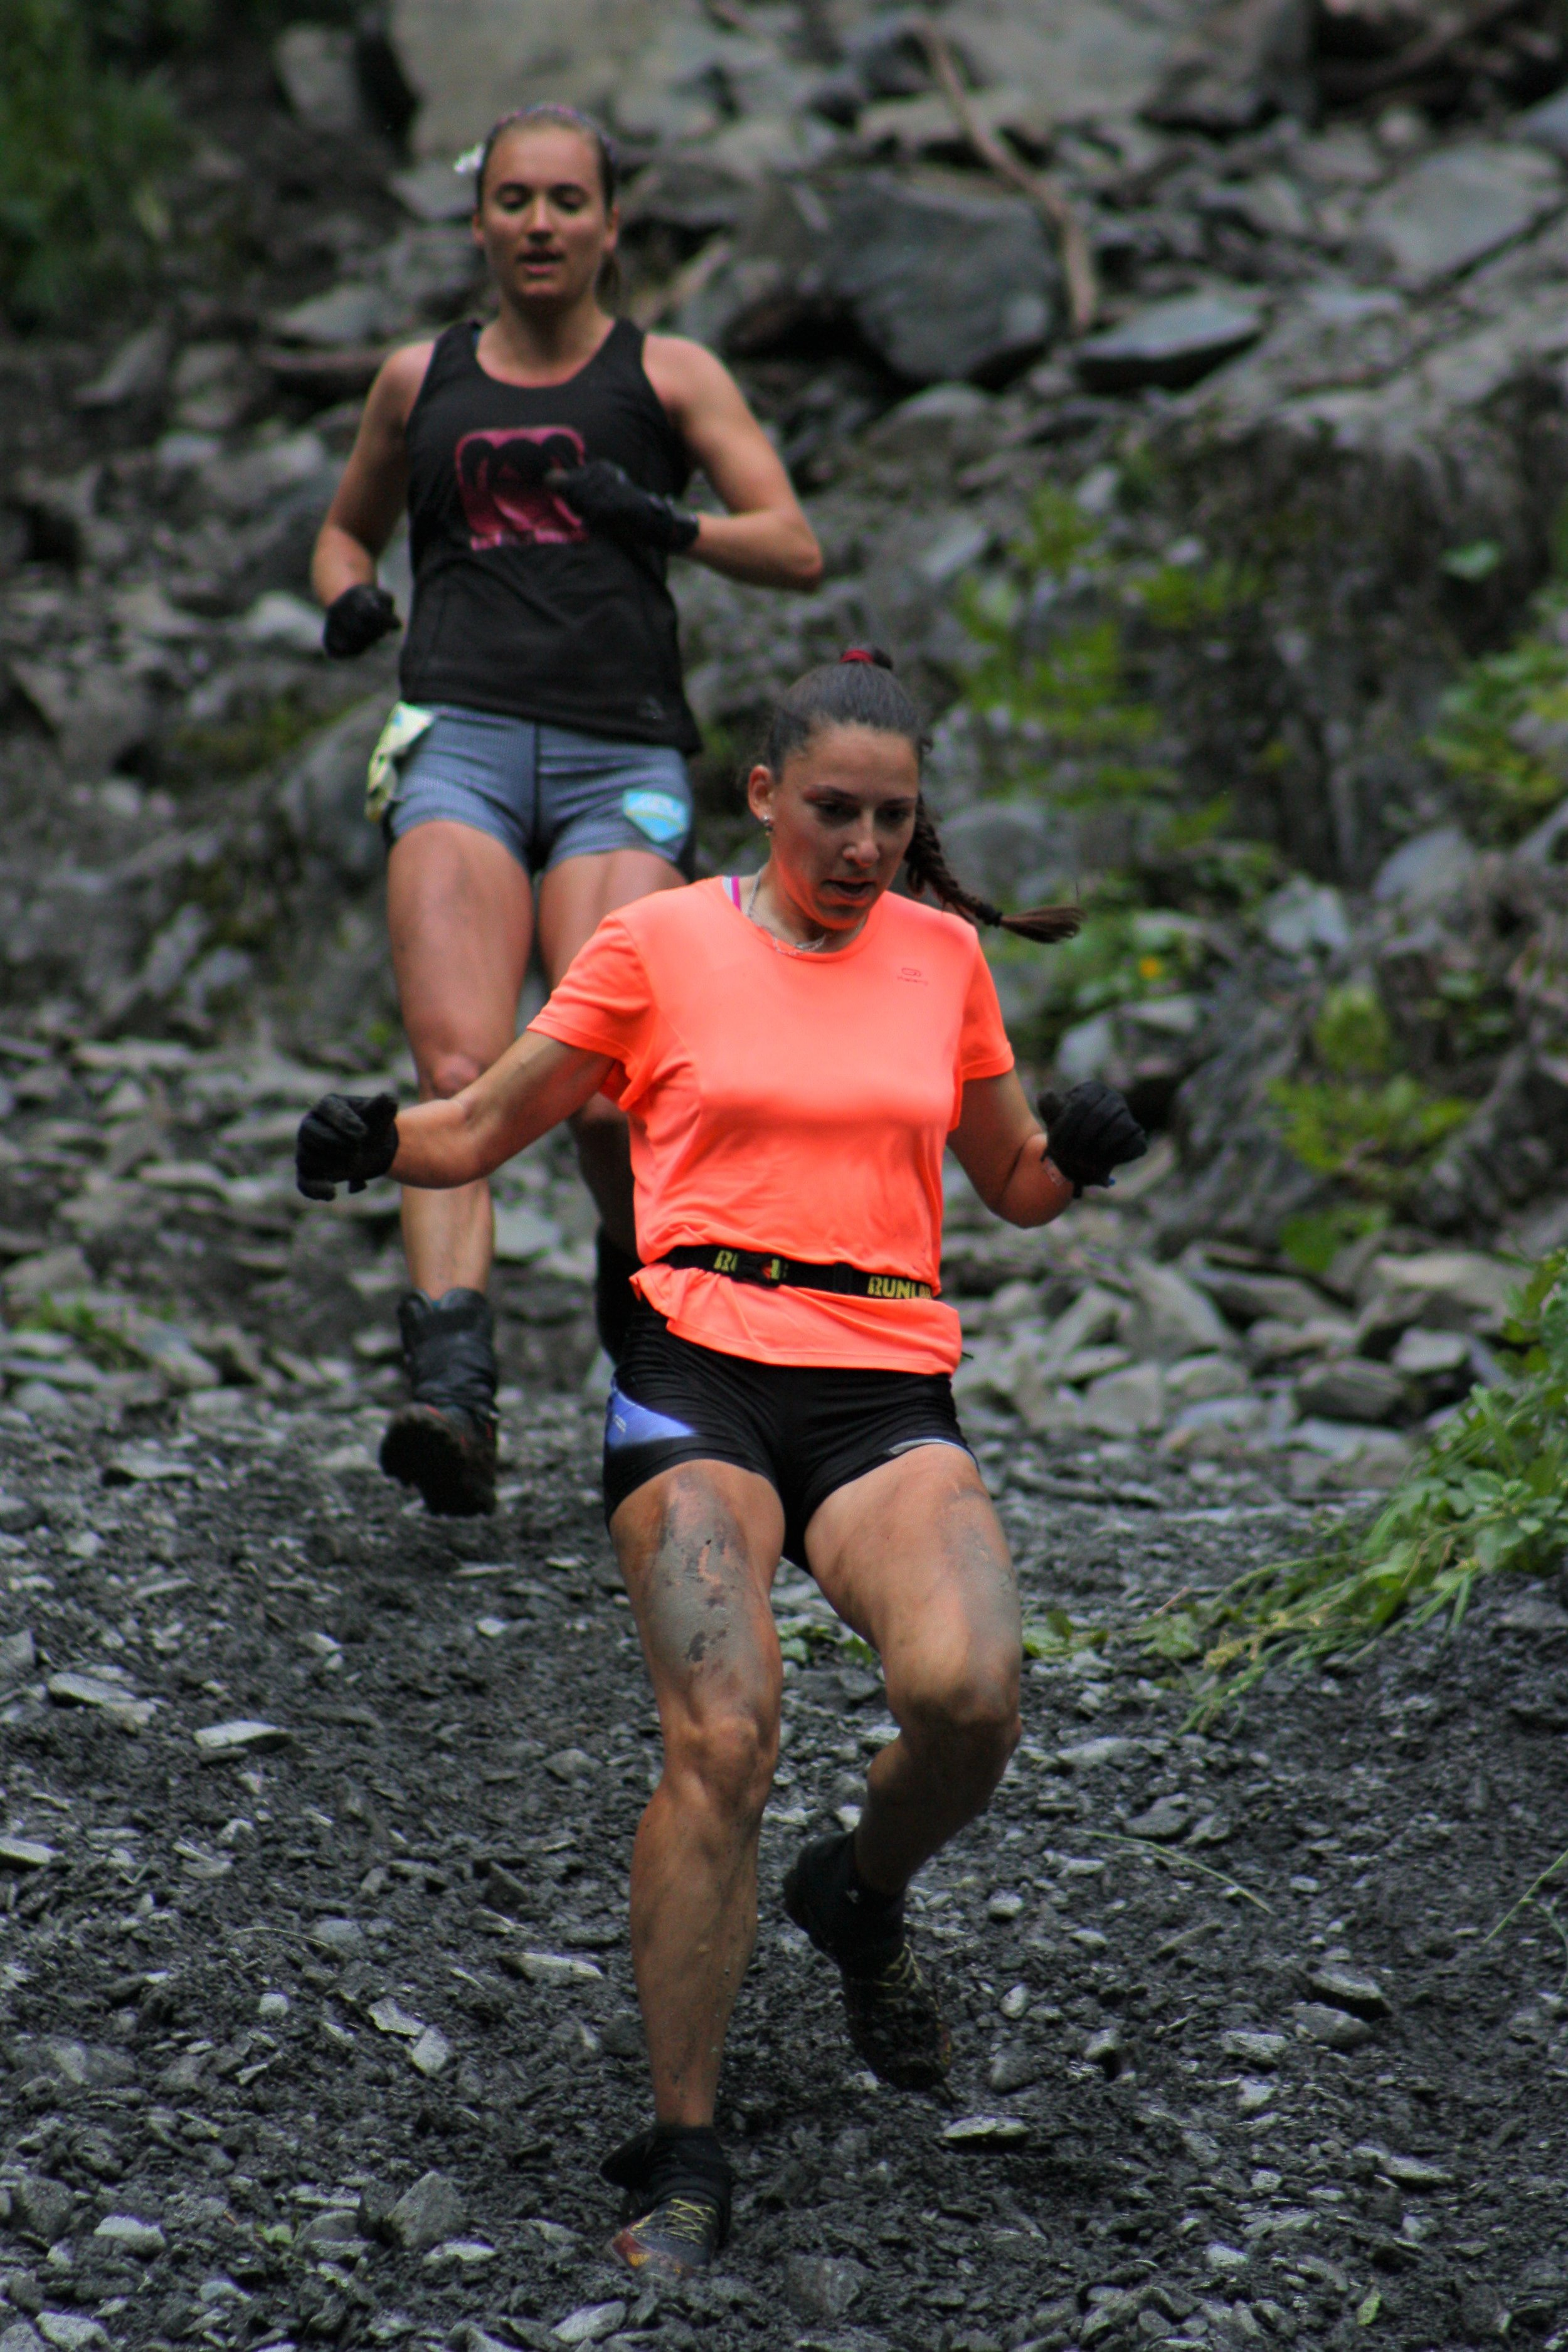 Siberian sky runner Varvara Shikanova emerges from the Mount Marathon trail on July 4 during her first Alaska race, in which she took 13th place, scaling and descending the 3,000-foot mountain in just over an hour. Shikanova was sponsored by U.S. Paralympic skier Andrew Kurka, a graduate of Colony High School, who petitioned the Mount Marathon race committee to allow his Russian friend to participate this year.